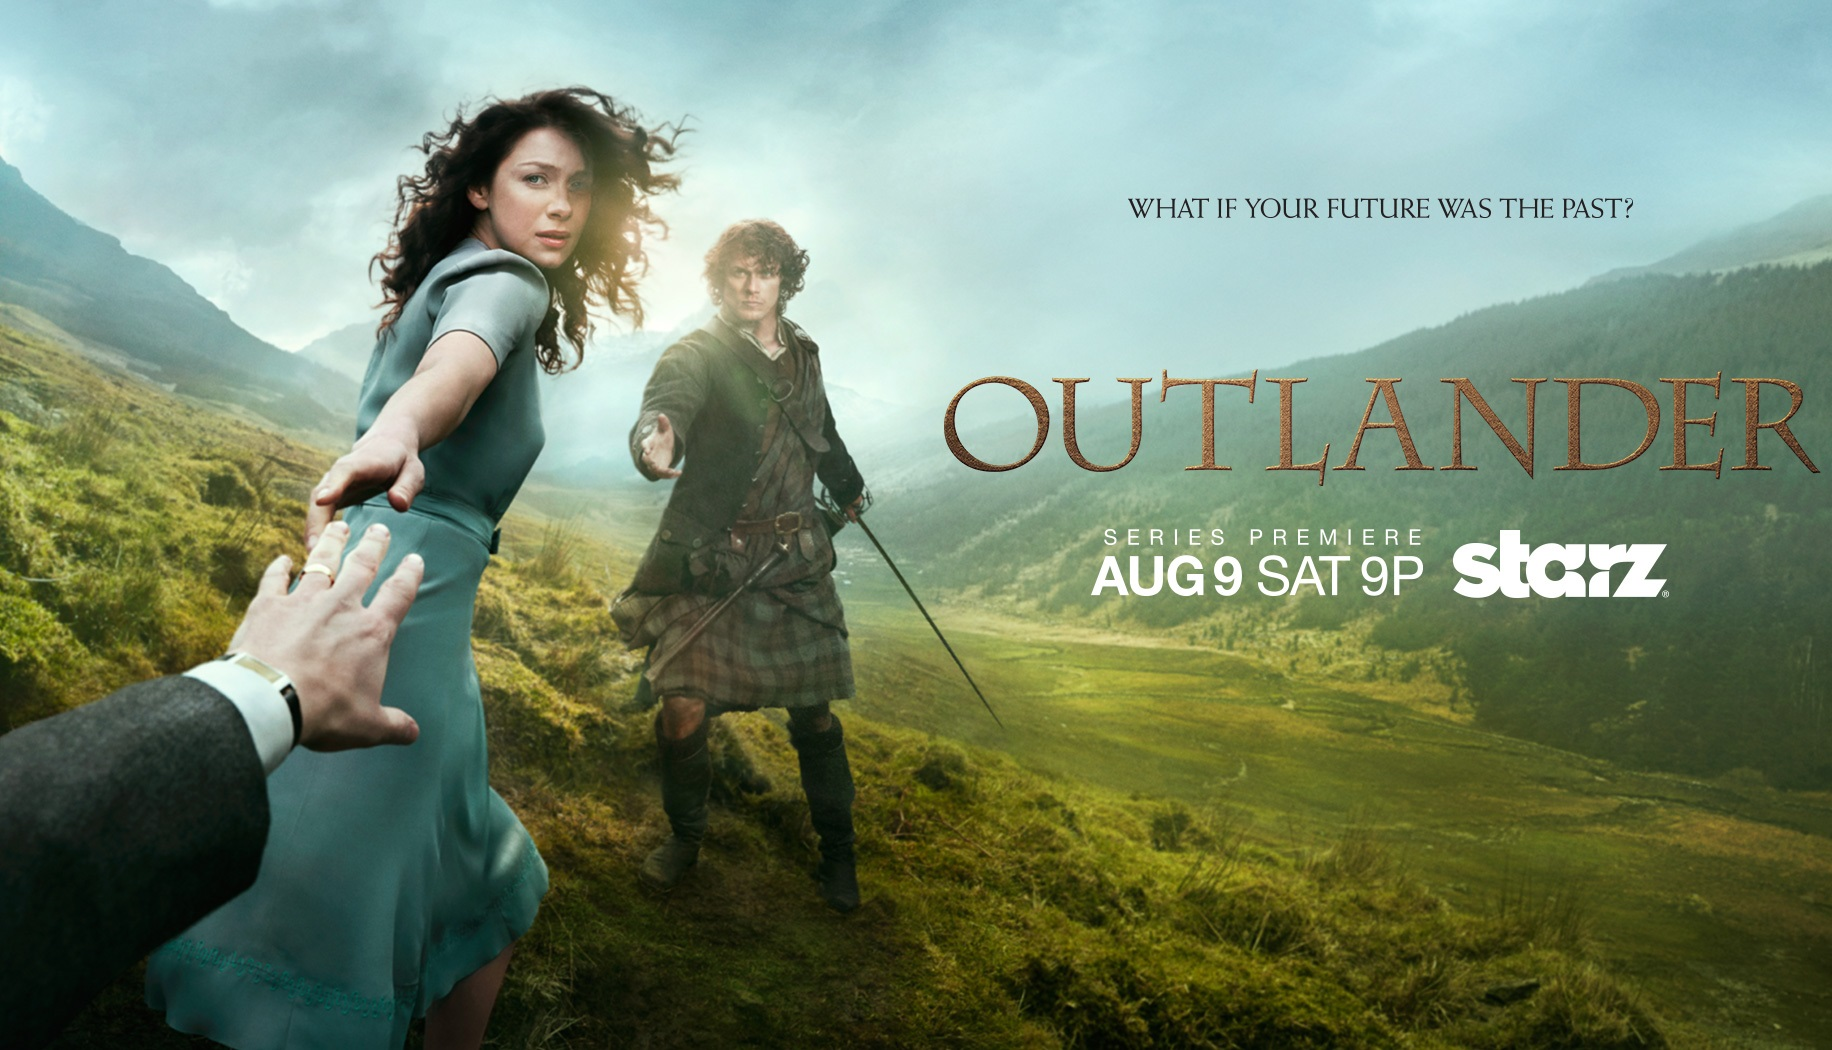 Outlander Season 3 Episode 2